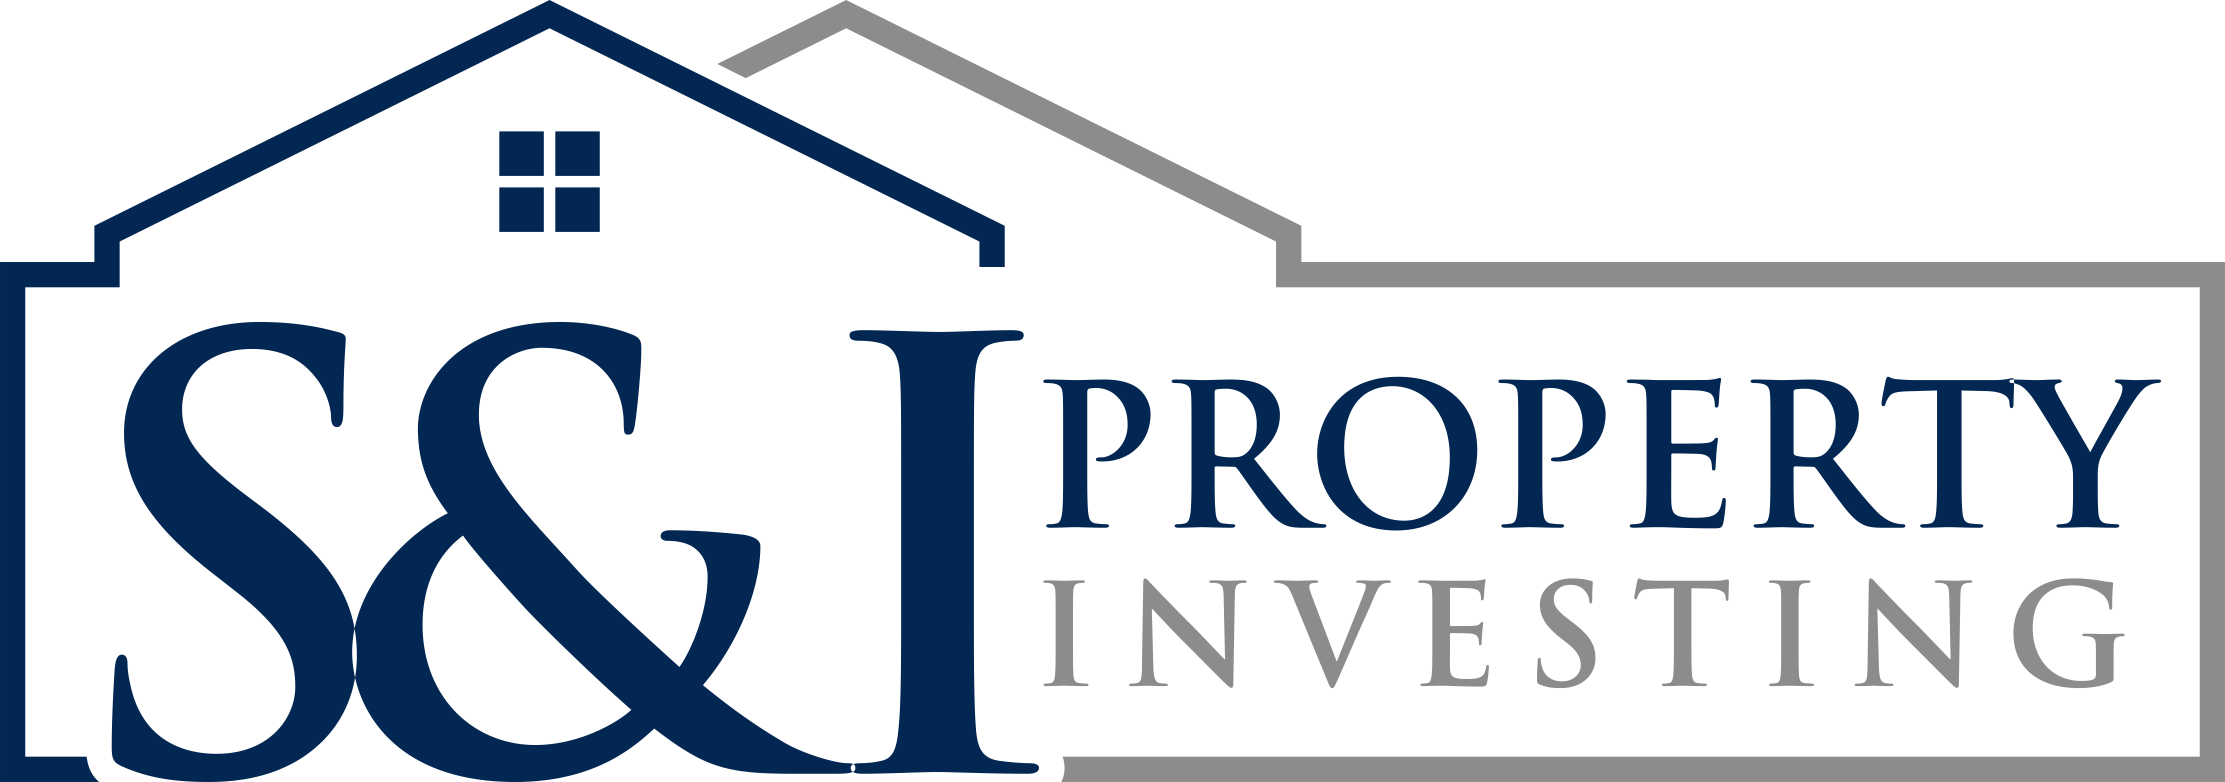 S&I Property Investing Ltd